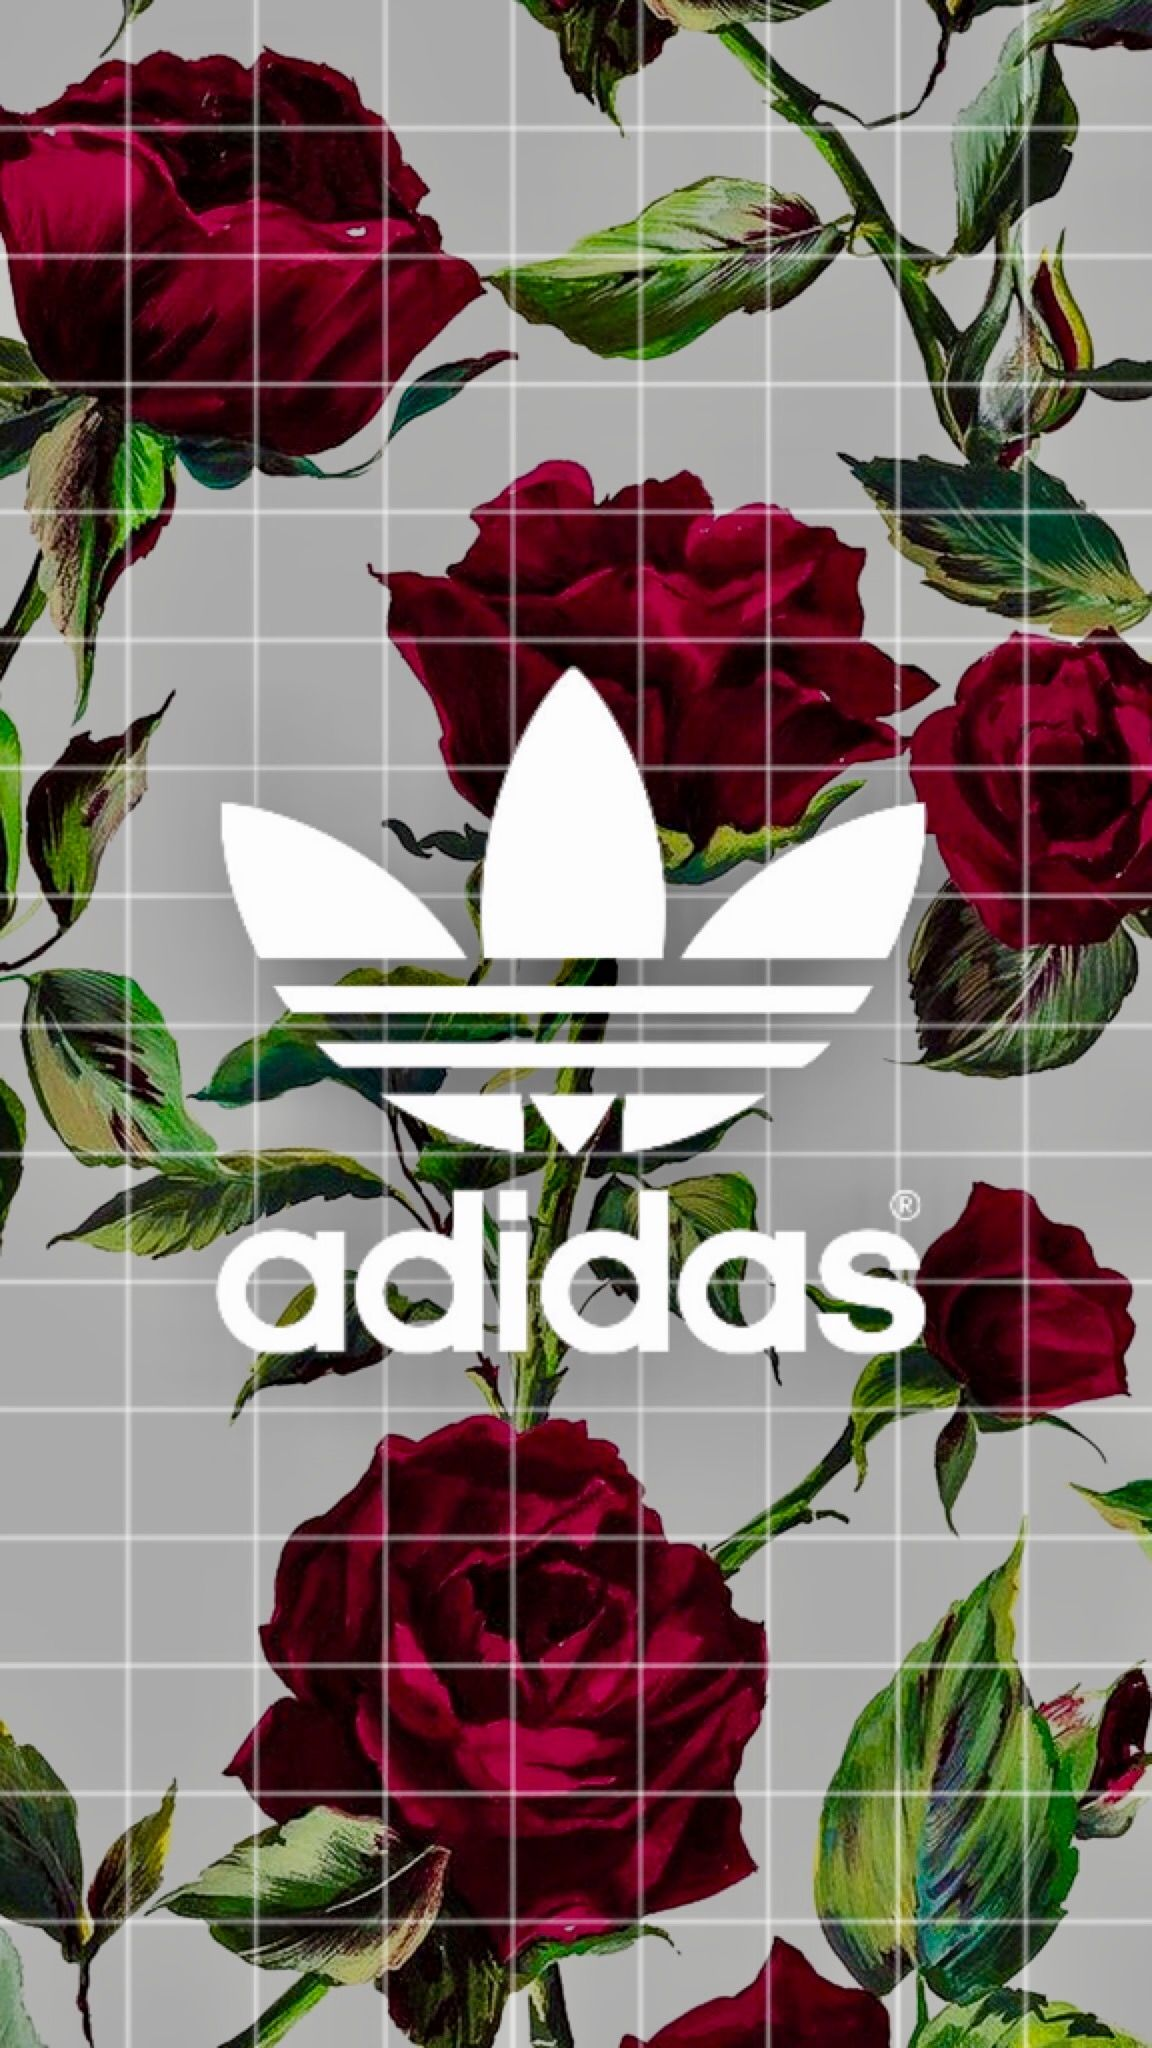 Swag Quotes Wallpaper Roses Adidas Wallpaper Iphone Iphone In 2019